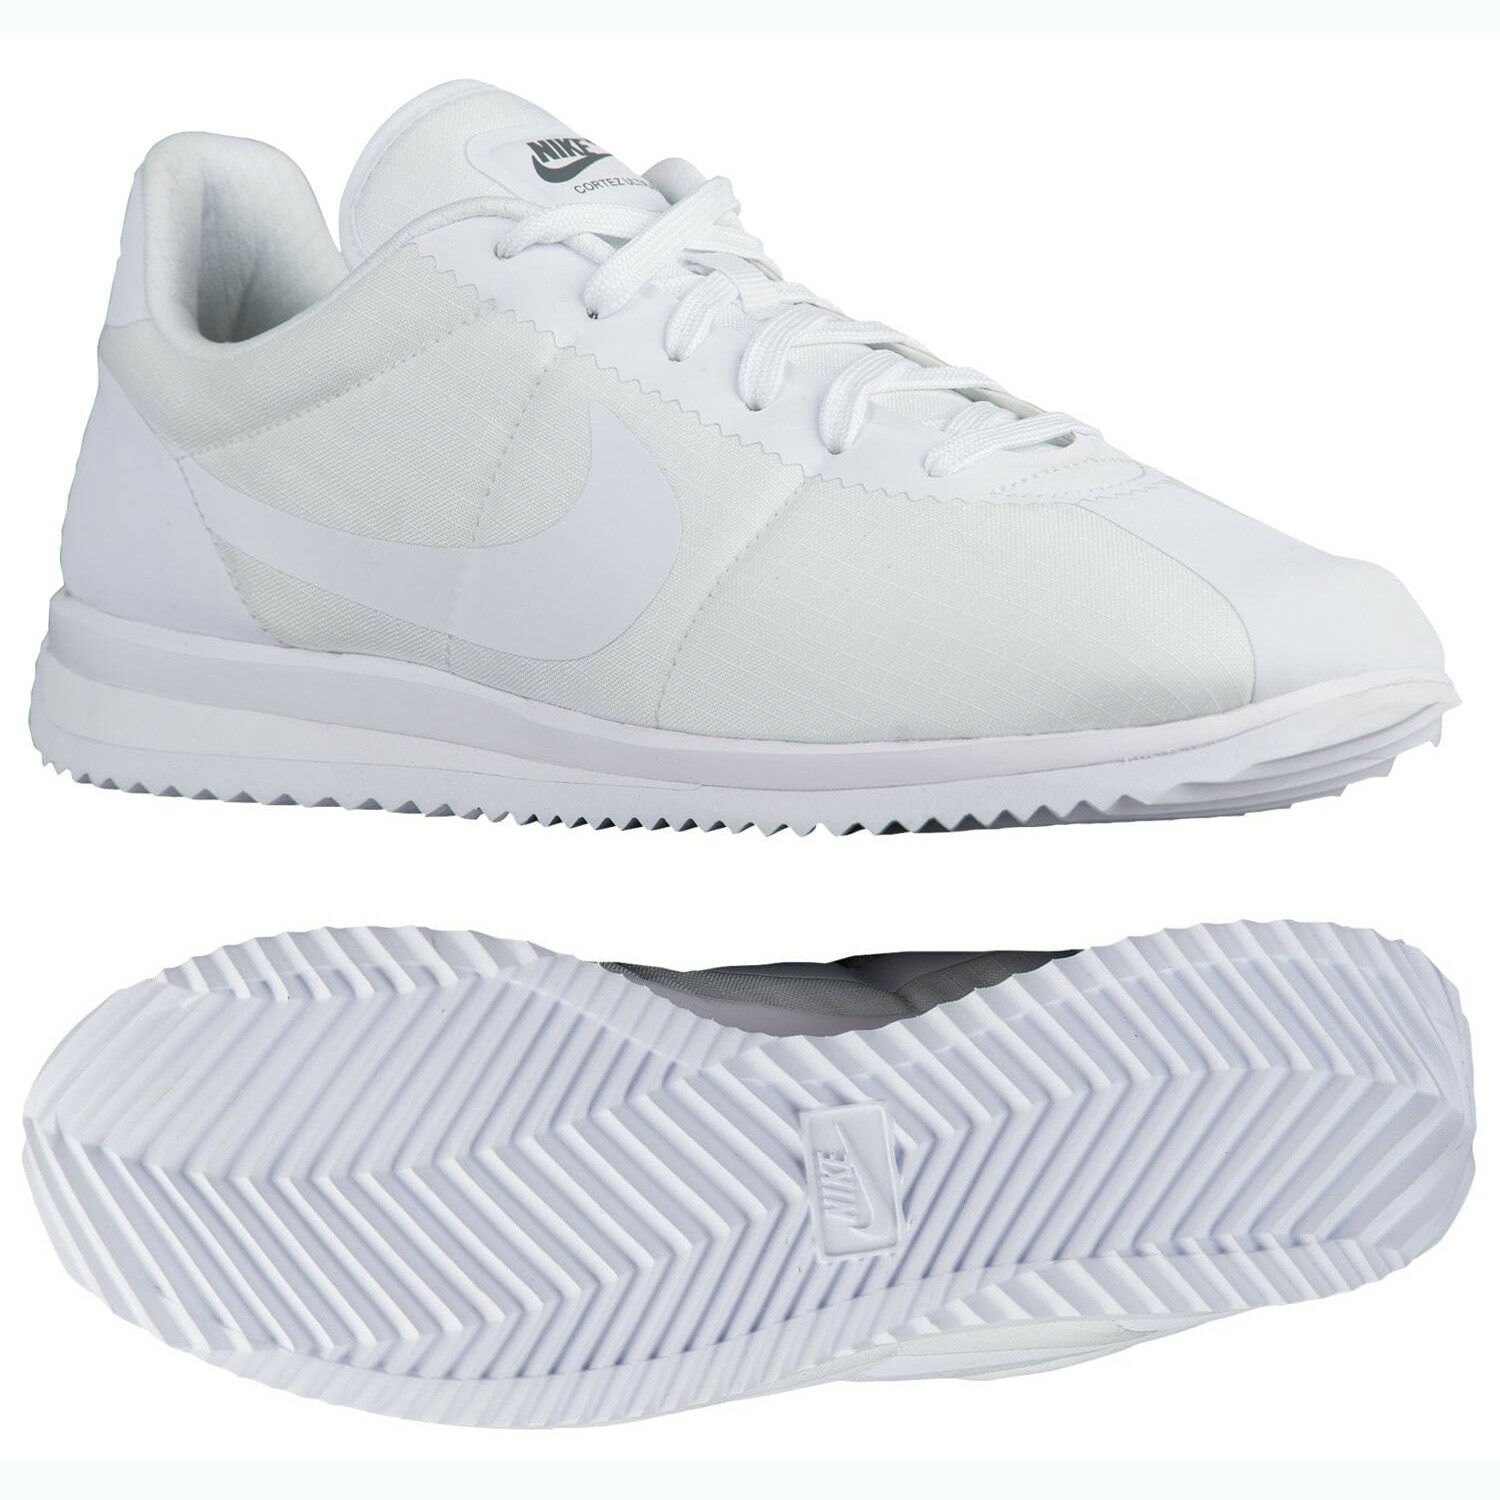 Nike Cortez Ultra 833142-101 White/White/Cool Grey Ripstop Uomo Shoes Sz 10